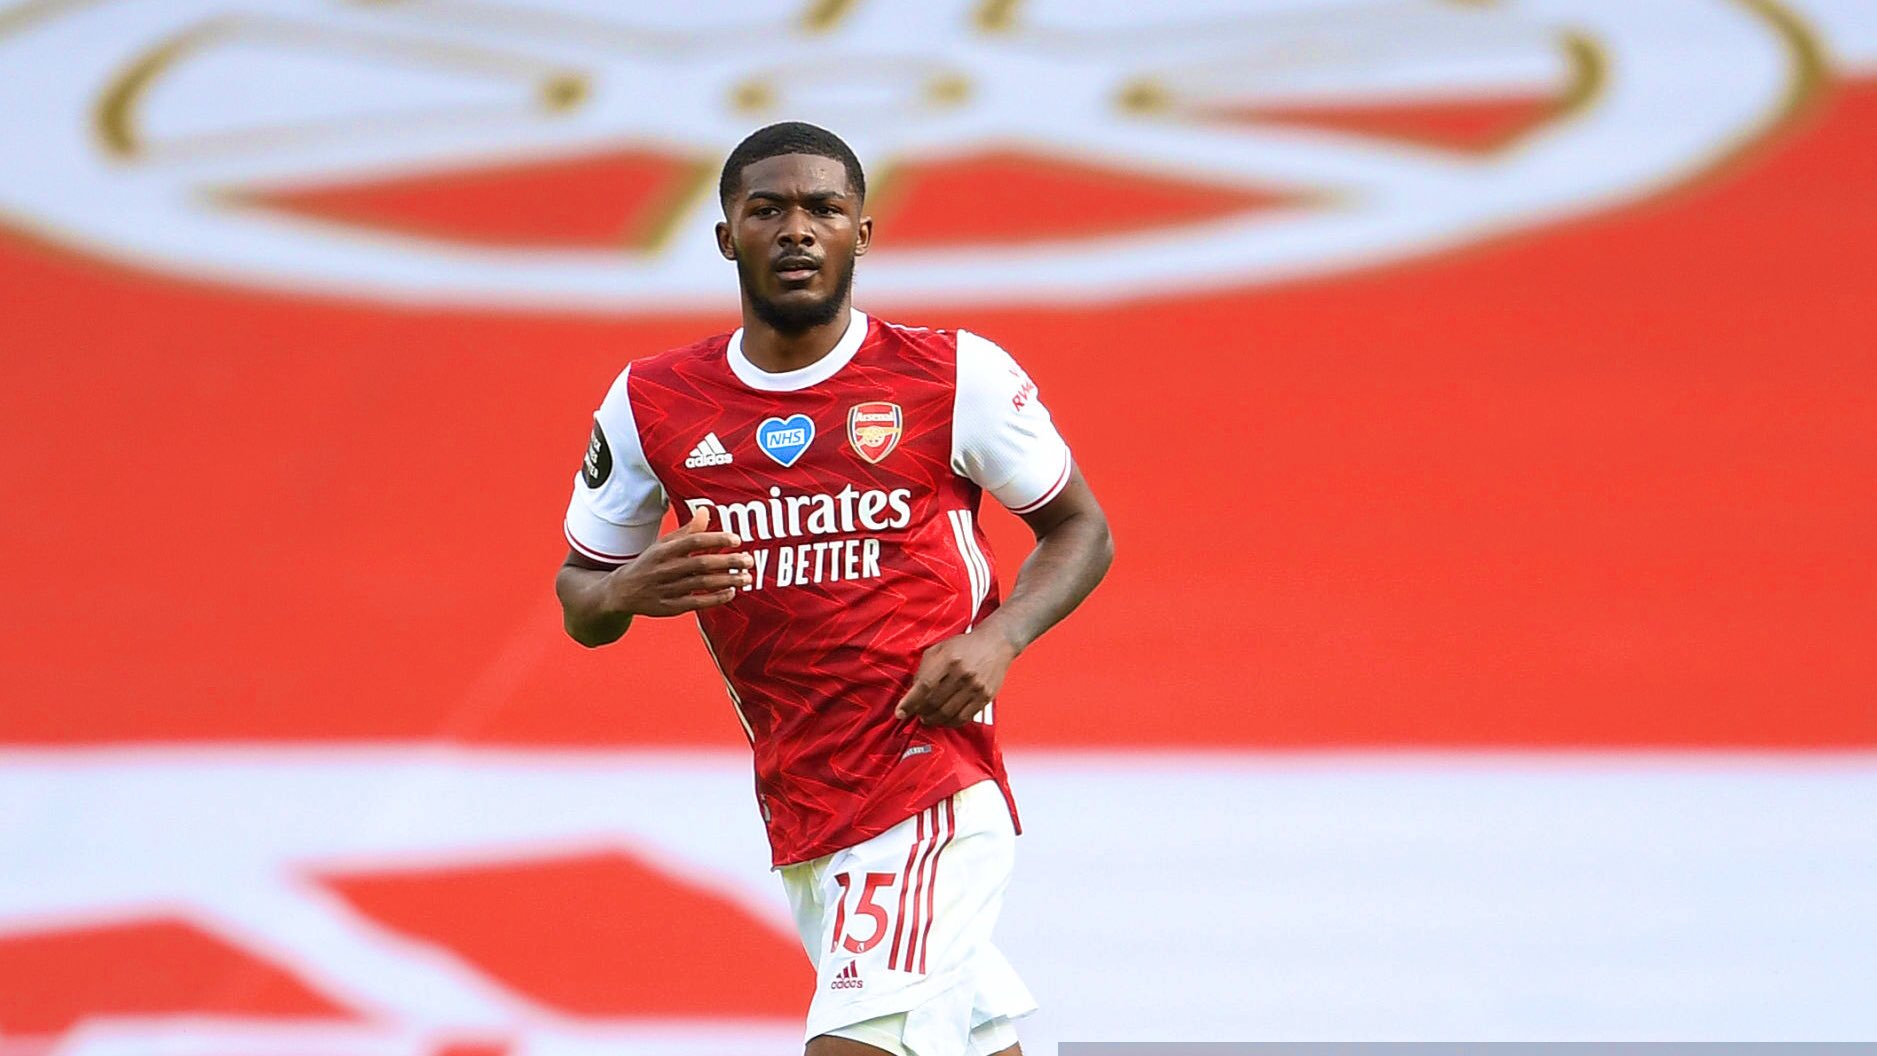 Arsenal respond to Wolves' offer of around £20m for Ainsley Maitland-Niles